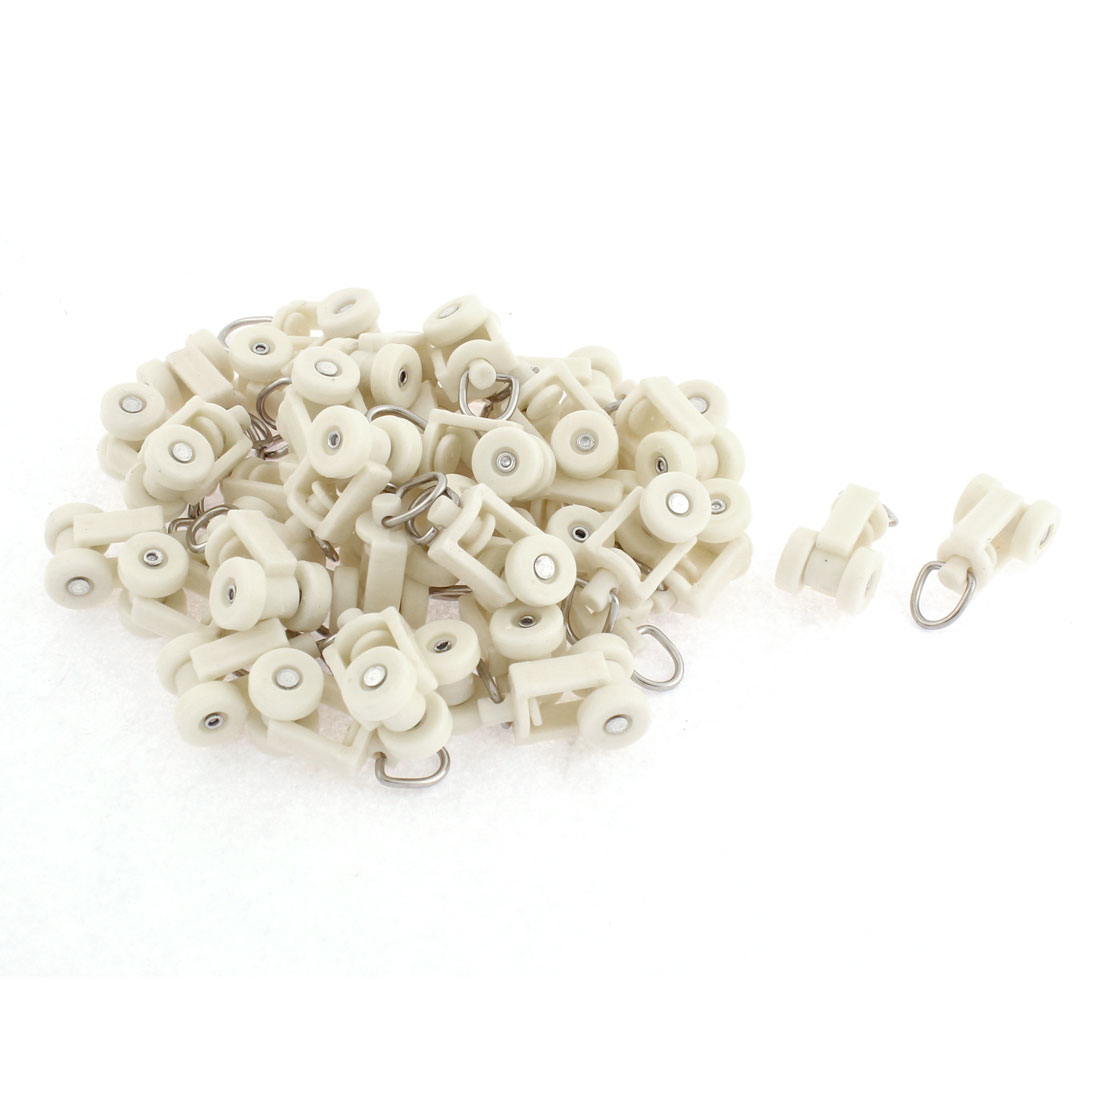 Plastic Curtain Track Carrier Slide Roller 11mm Dia Wheel White 40 Pcs